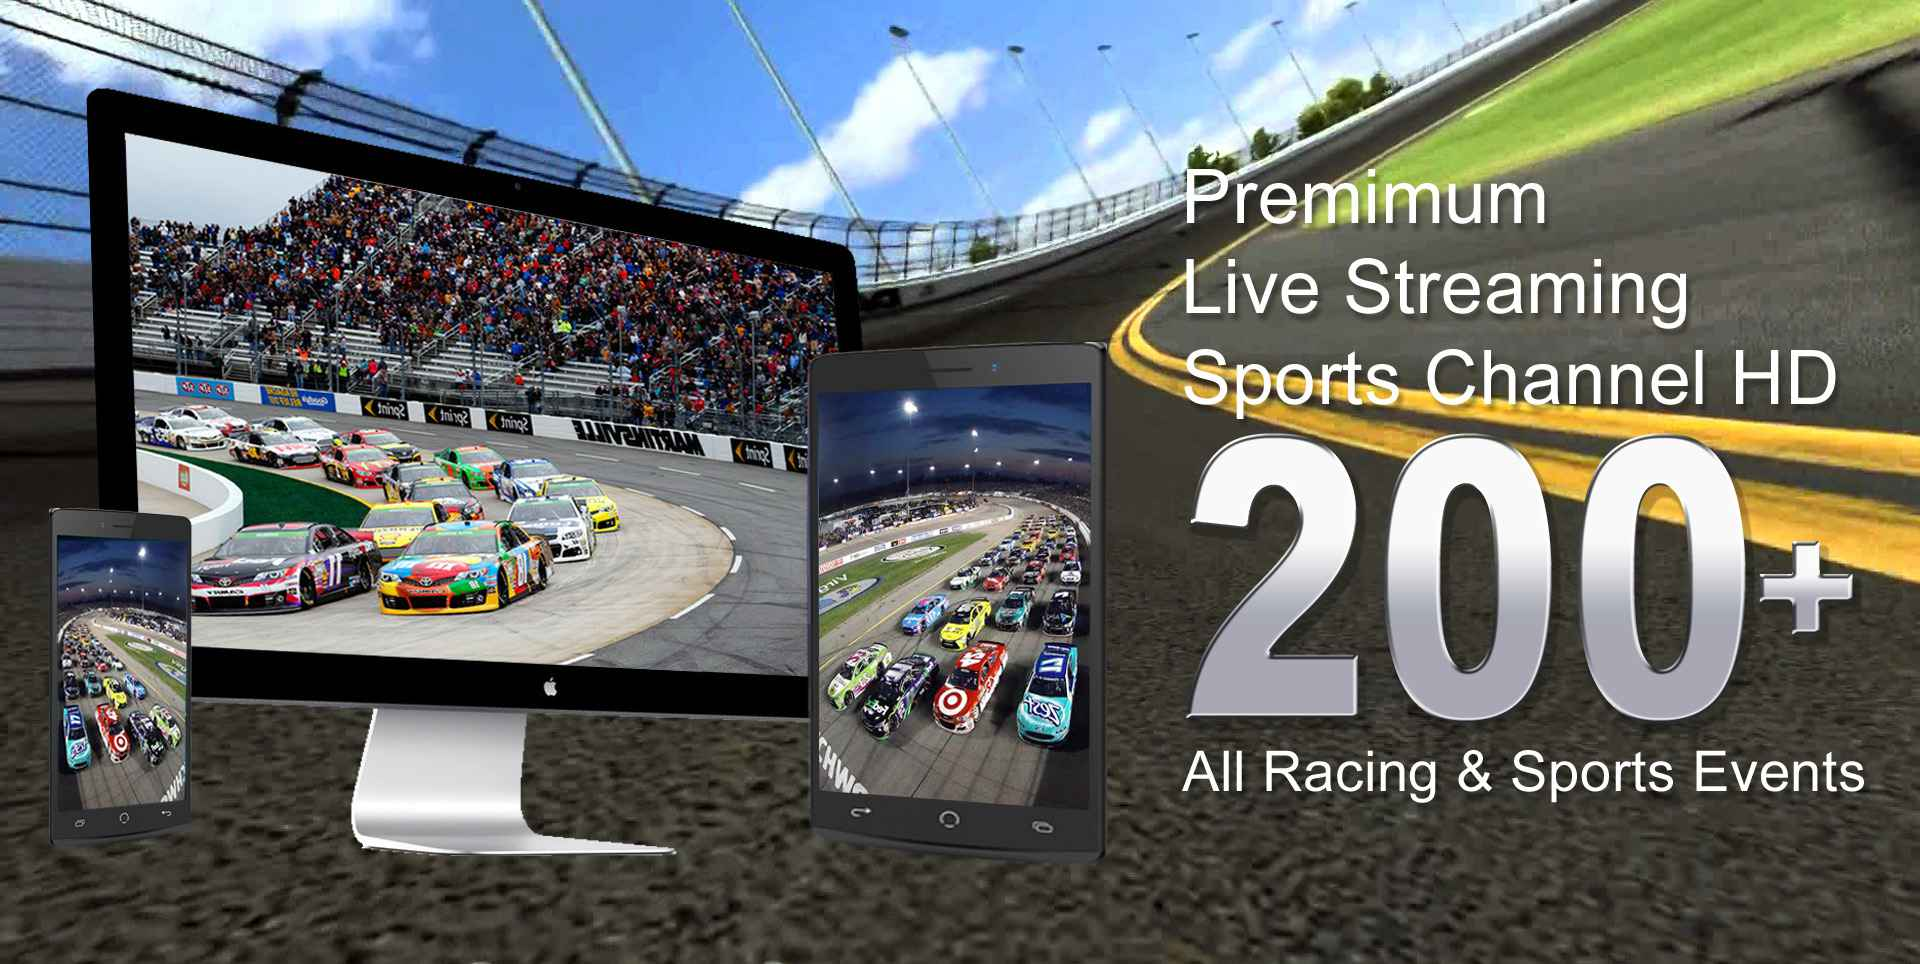 2015 Nascar Kentucky Race Live